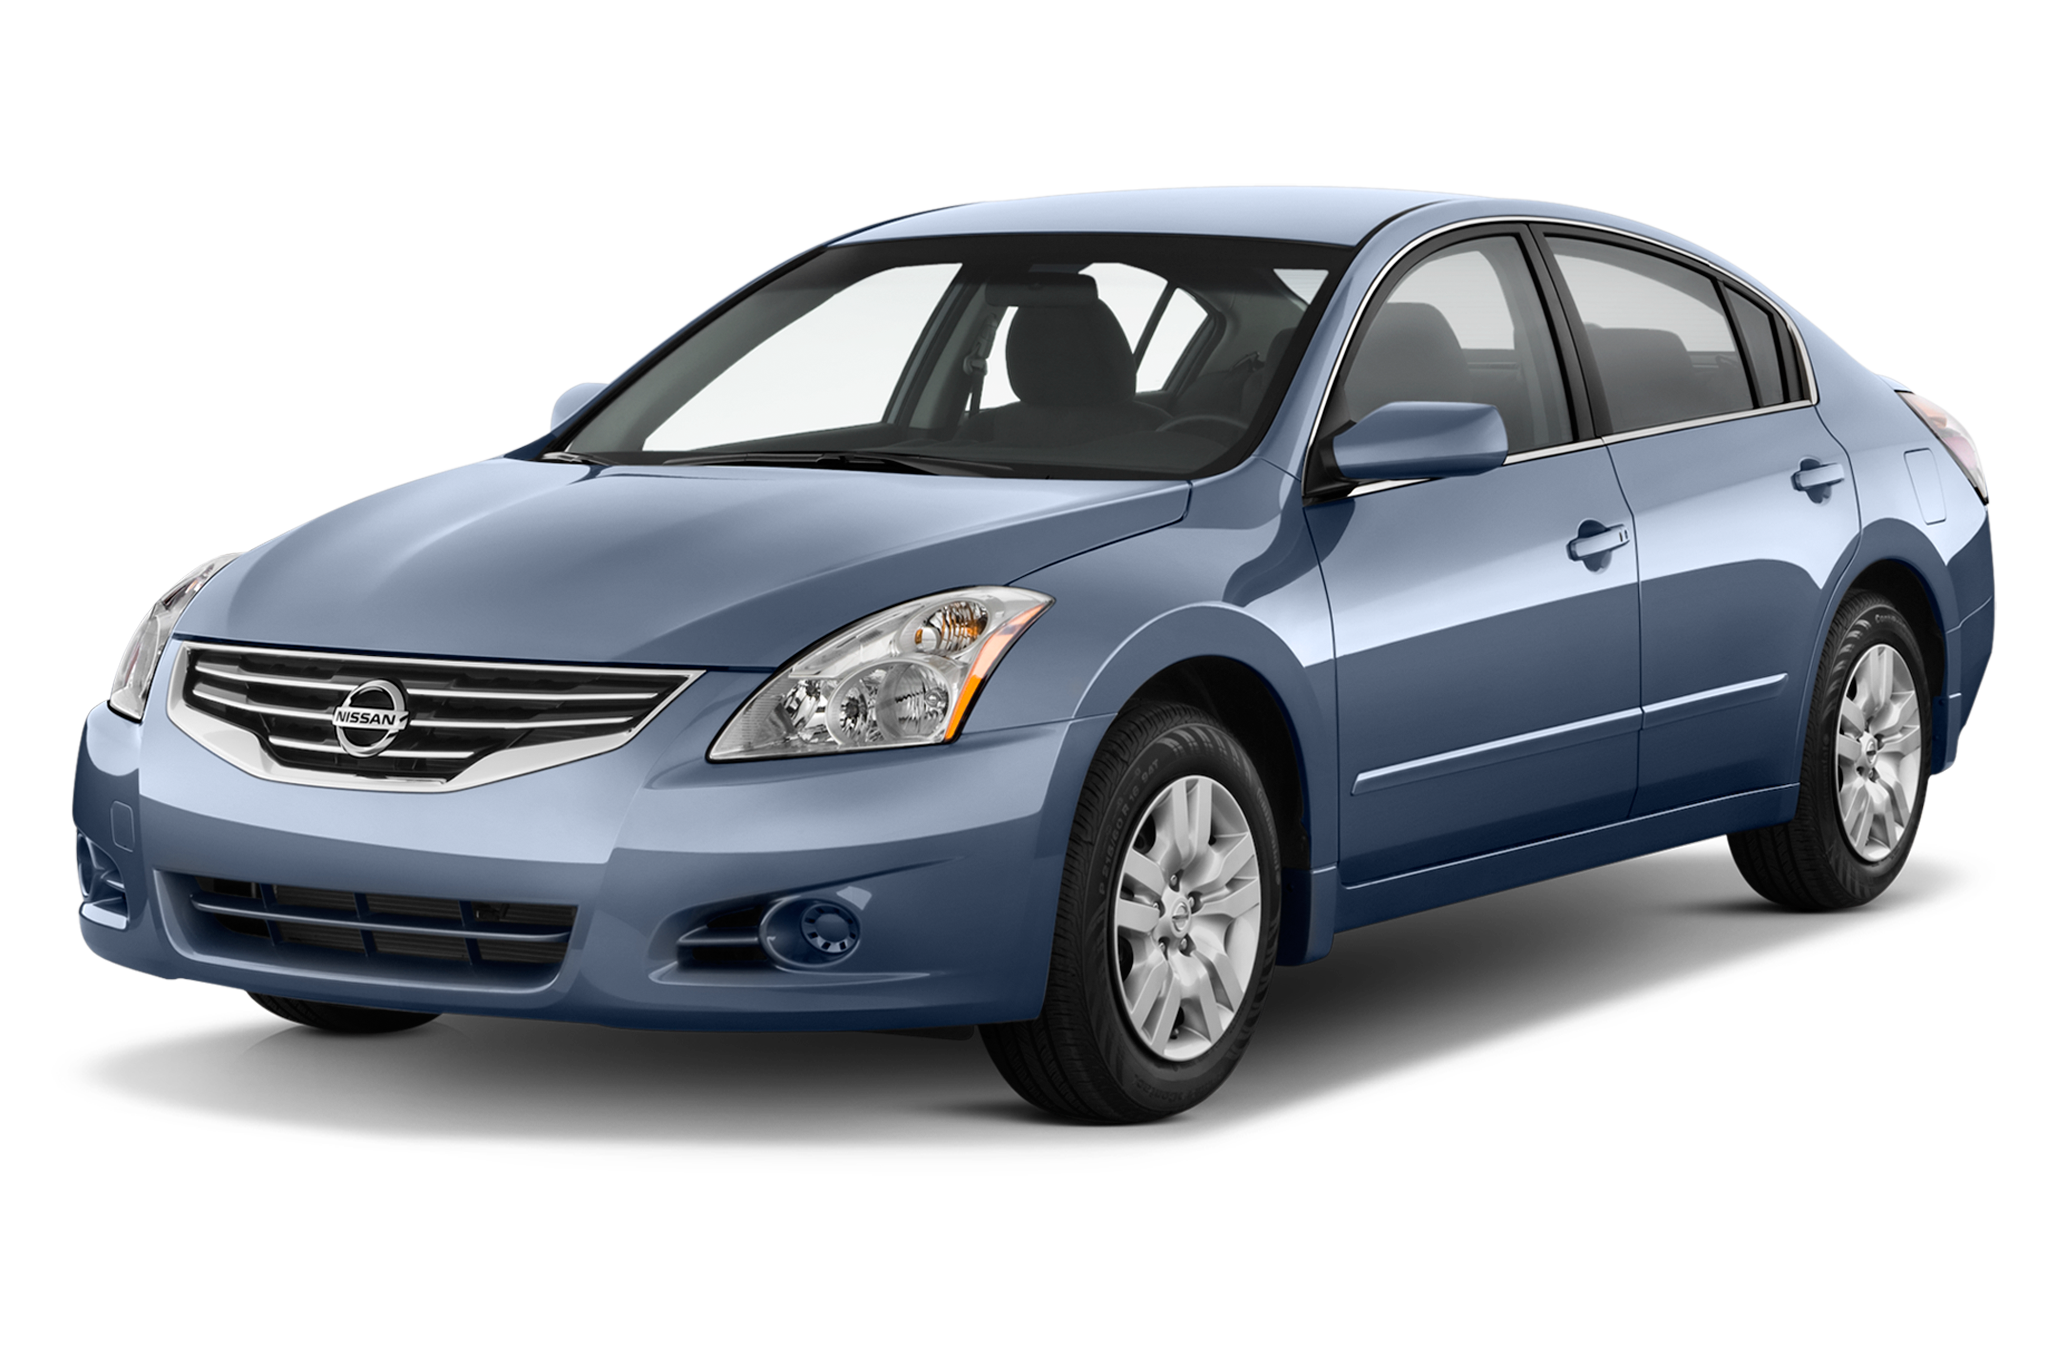 2011 nissan altima pricing msn autos. Black Bedroom Furniture Sets. Home Design Ideas